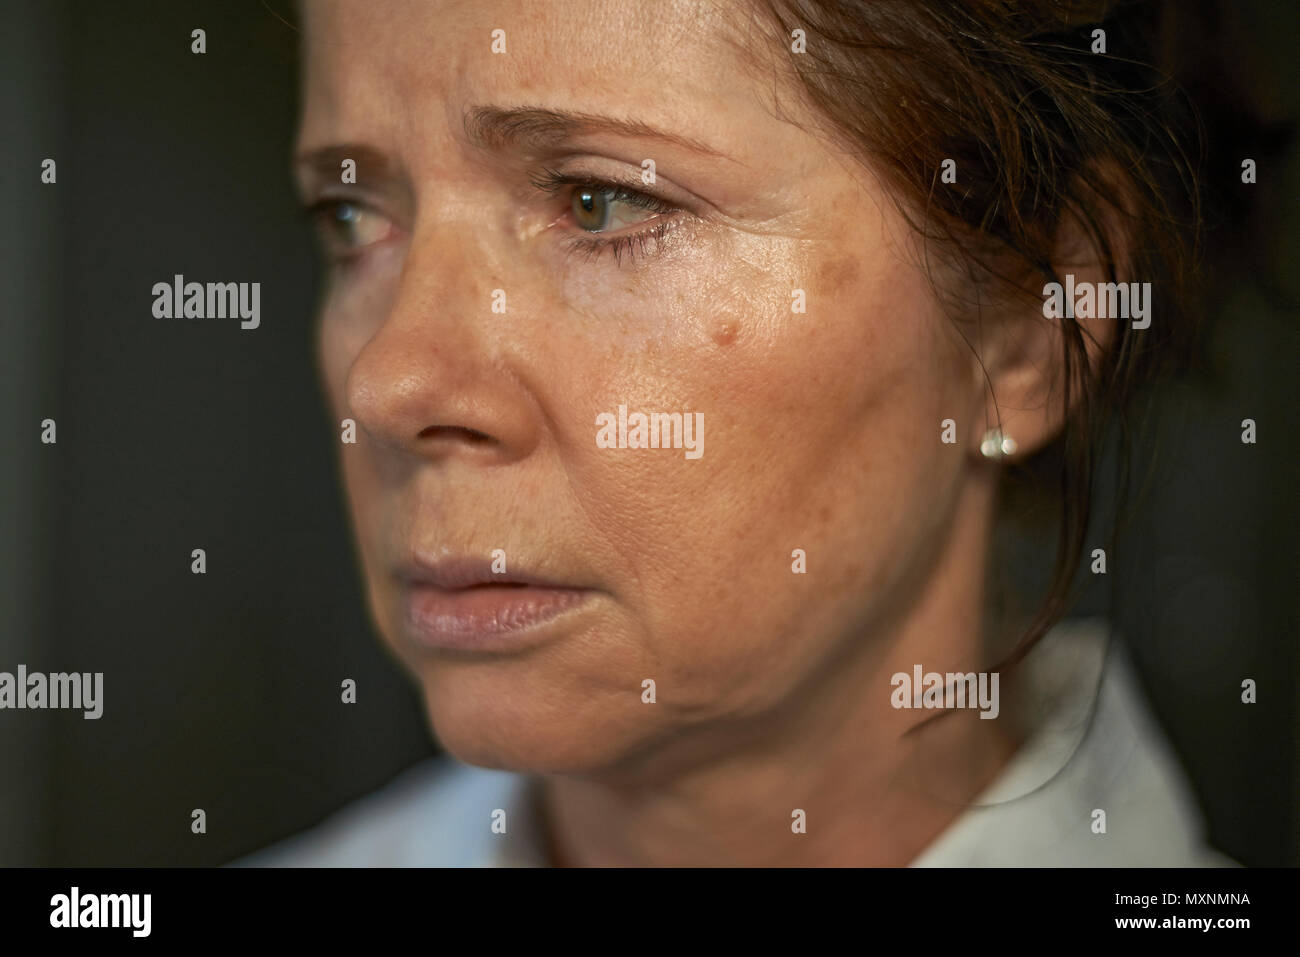 portrait of an elderly caucasian woman looking very lost and upset